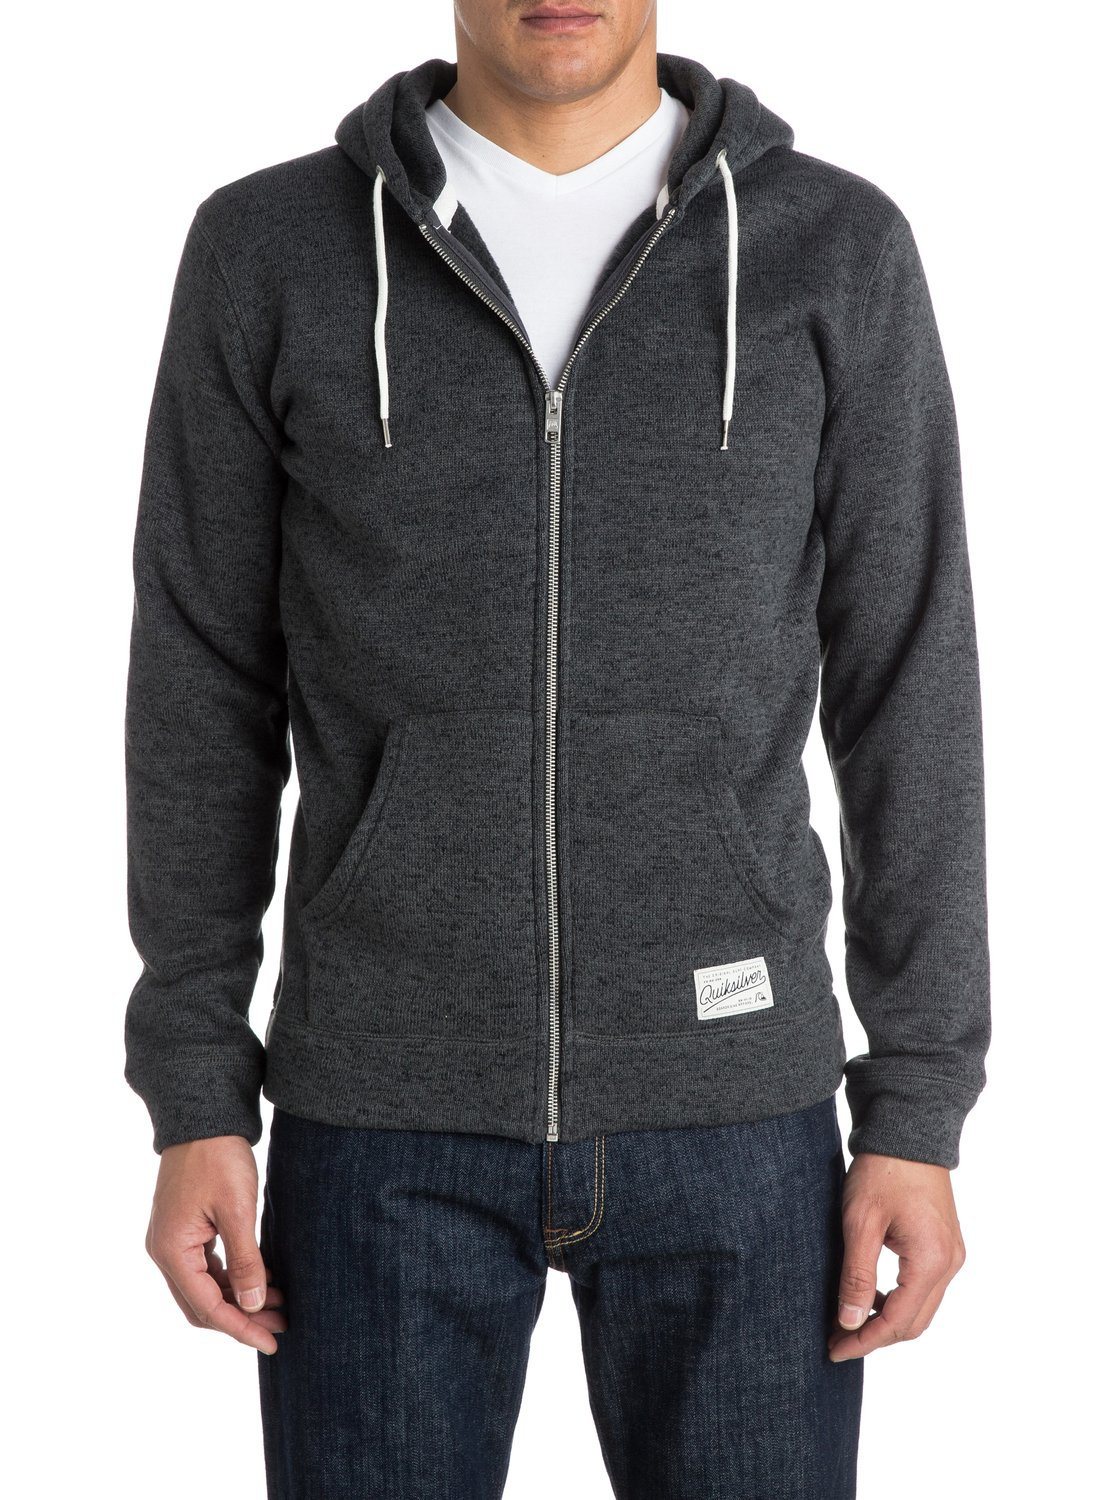 Quiksilver™ Keller Zip - Zip-Up Polar Fleece Hoodie - Fleece Top ...